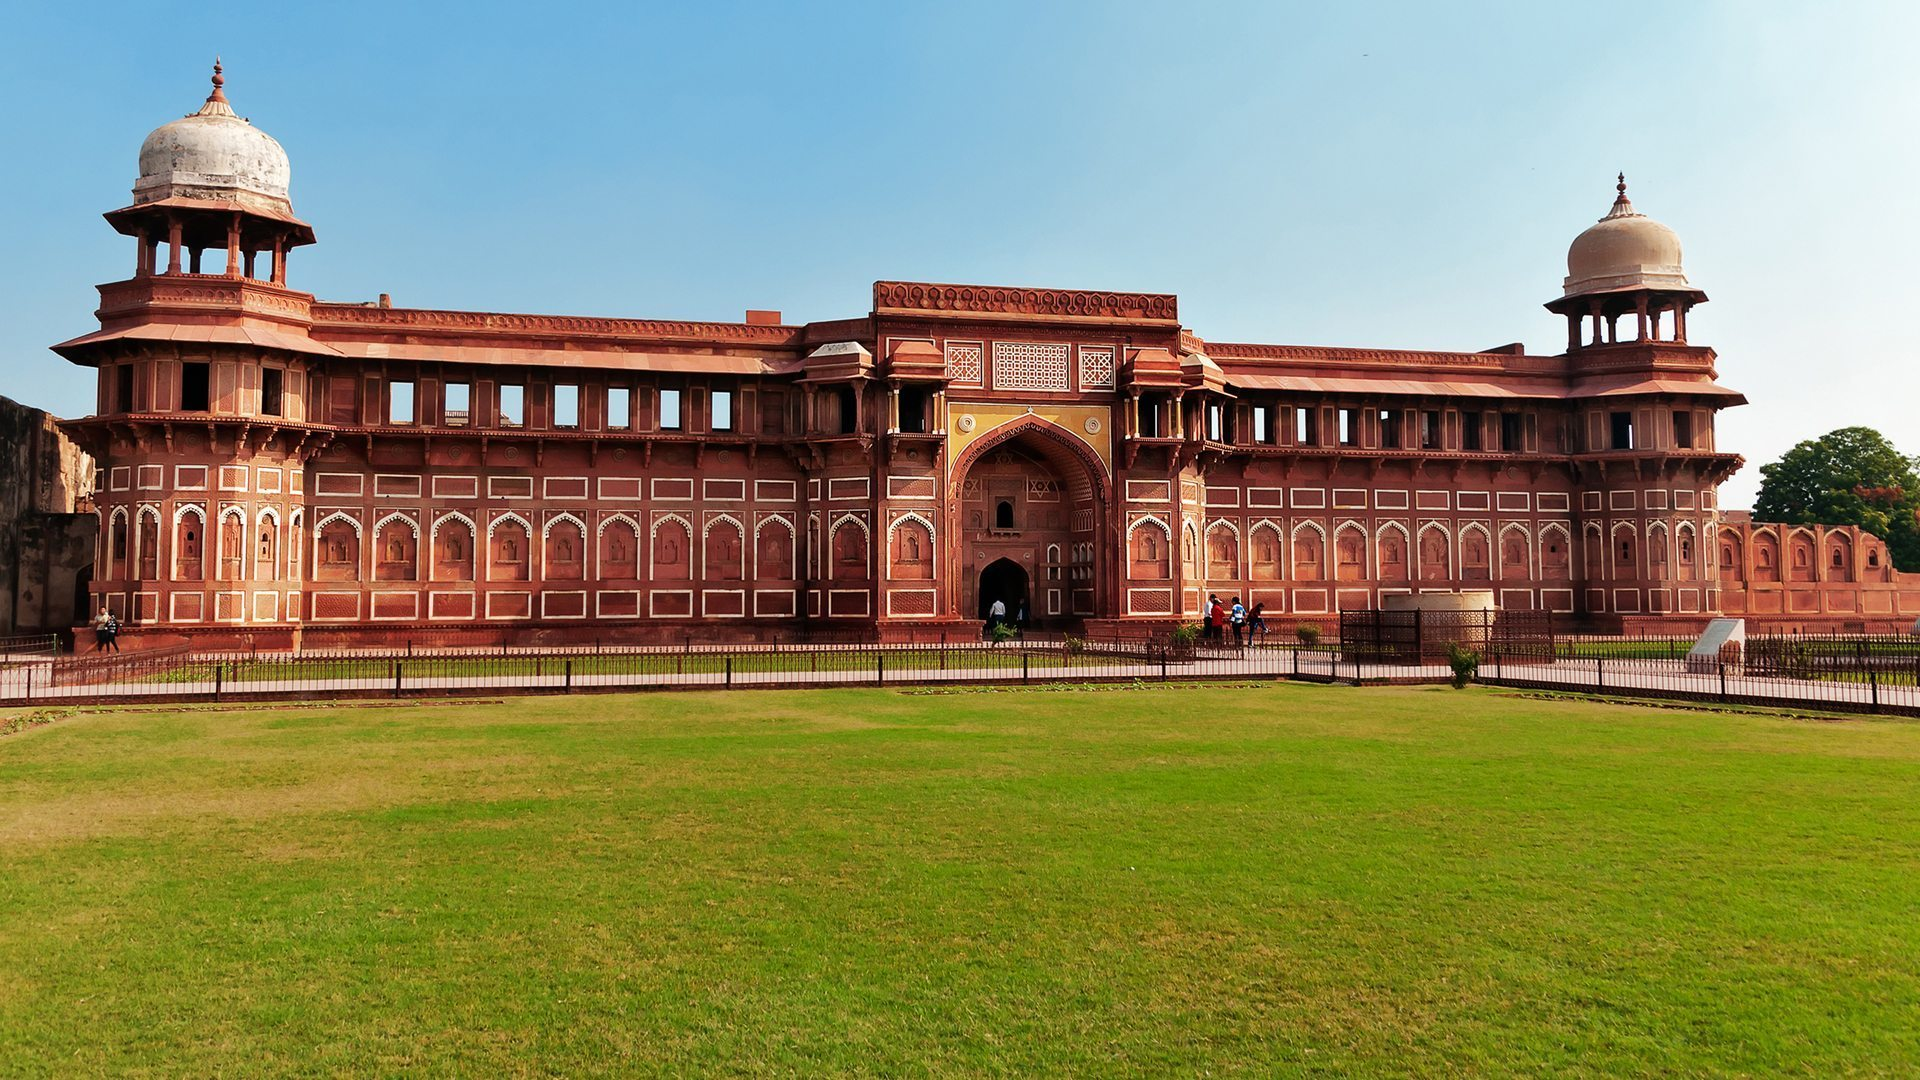 jahangiri mahal agra fort - world heitage site in india